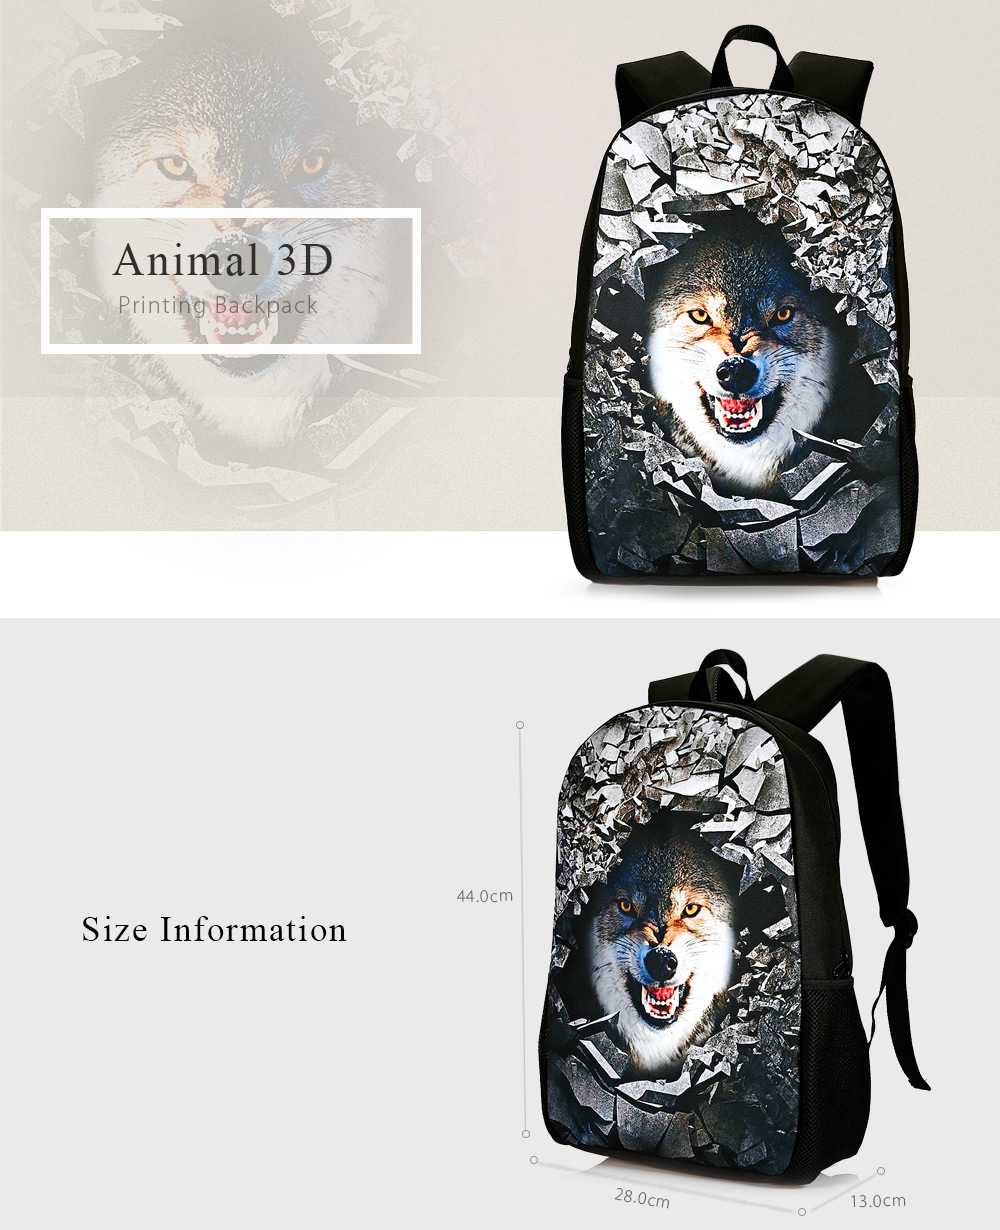 13e1cd235097 3D Rubble Animal Print Backpack - $31.55 Free Shipping|Gearbest.com